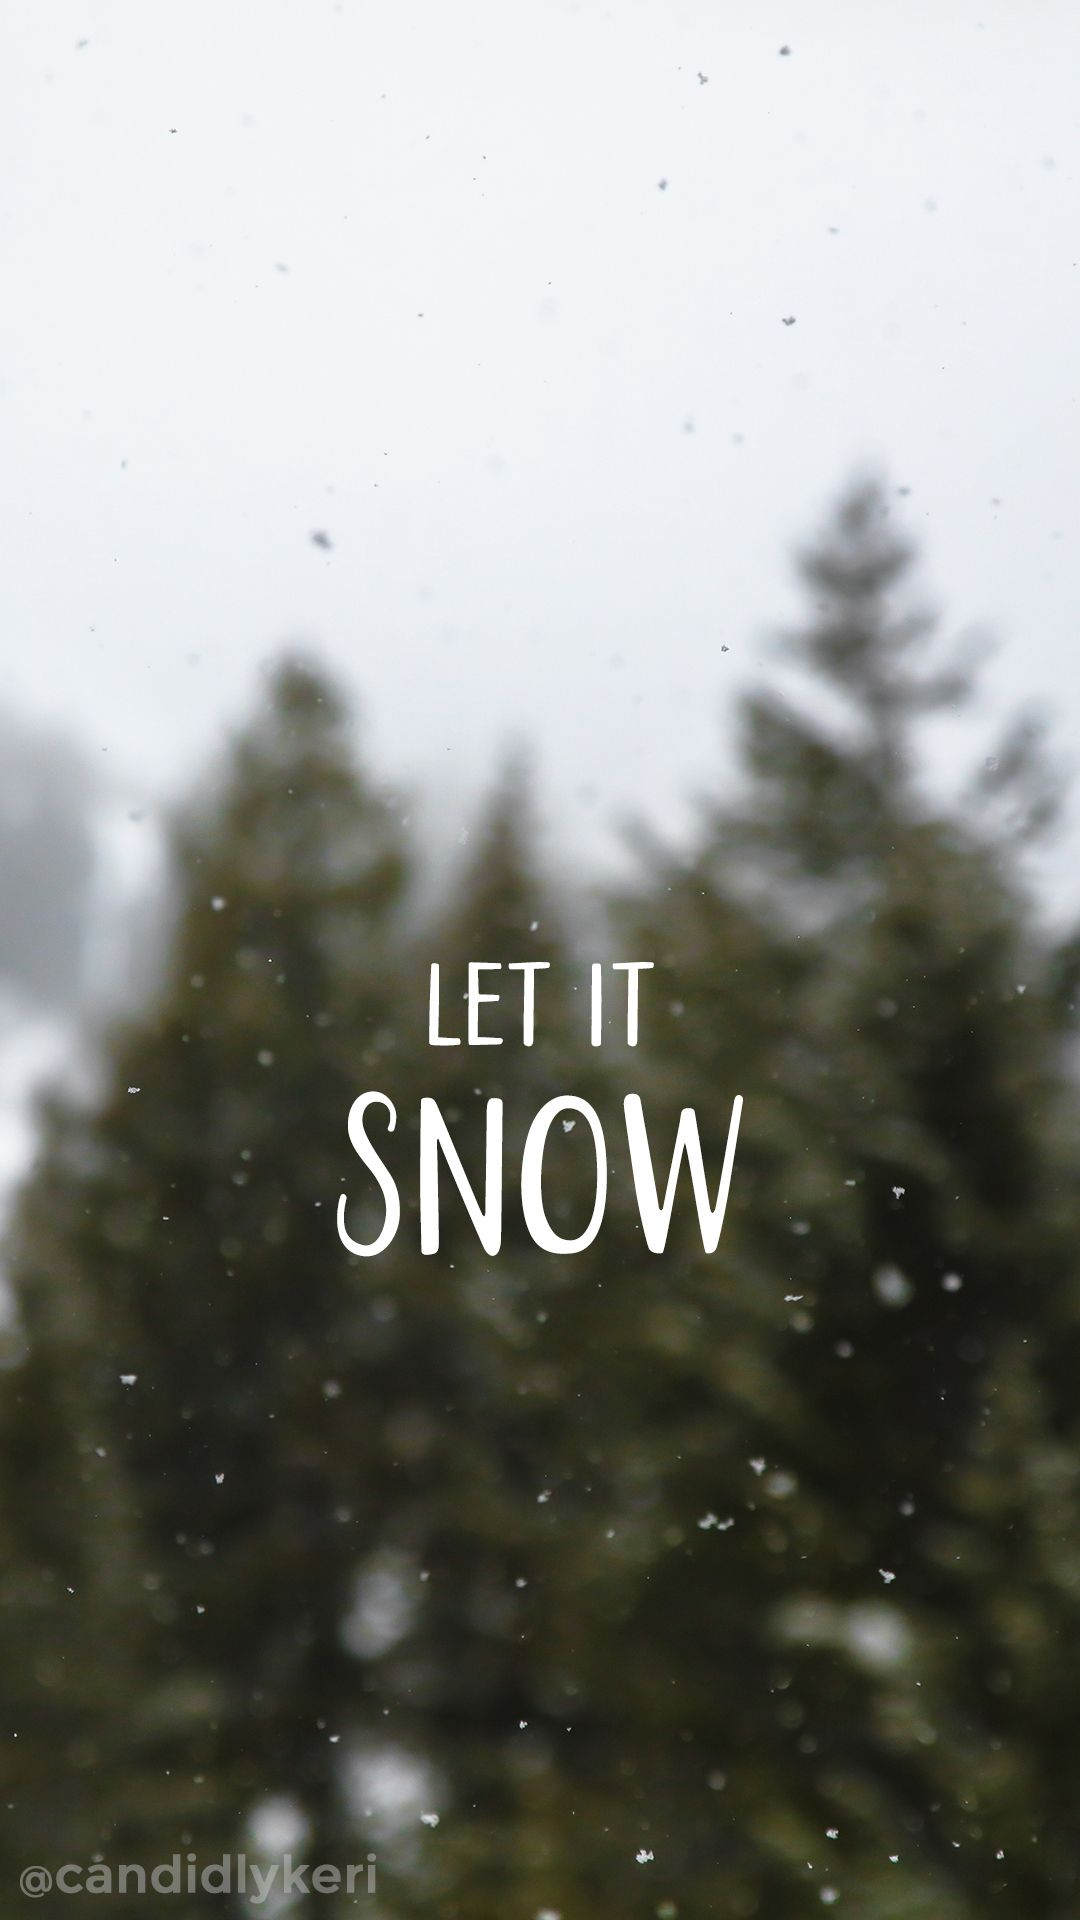 Let It Snow Snow Nature Background Wallpaper You Can Download For Free On Wallpaper Iphone Christmas Cute Christmas Wallpaper Christmas Wallpaper Backgrounds